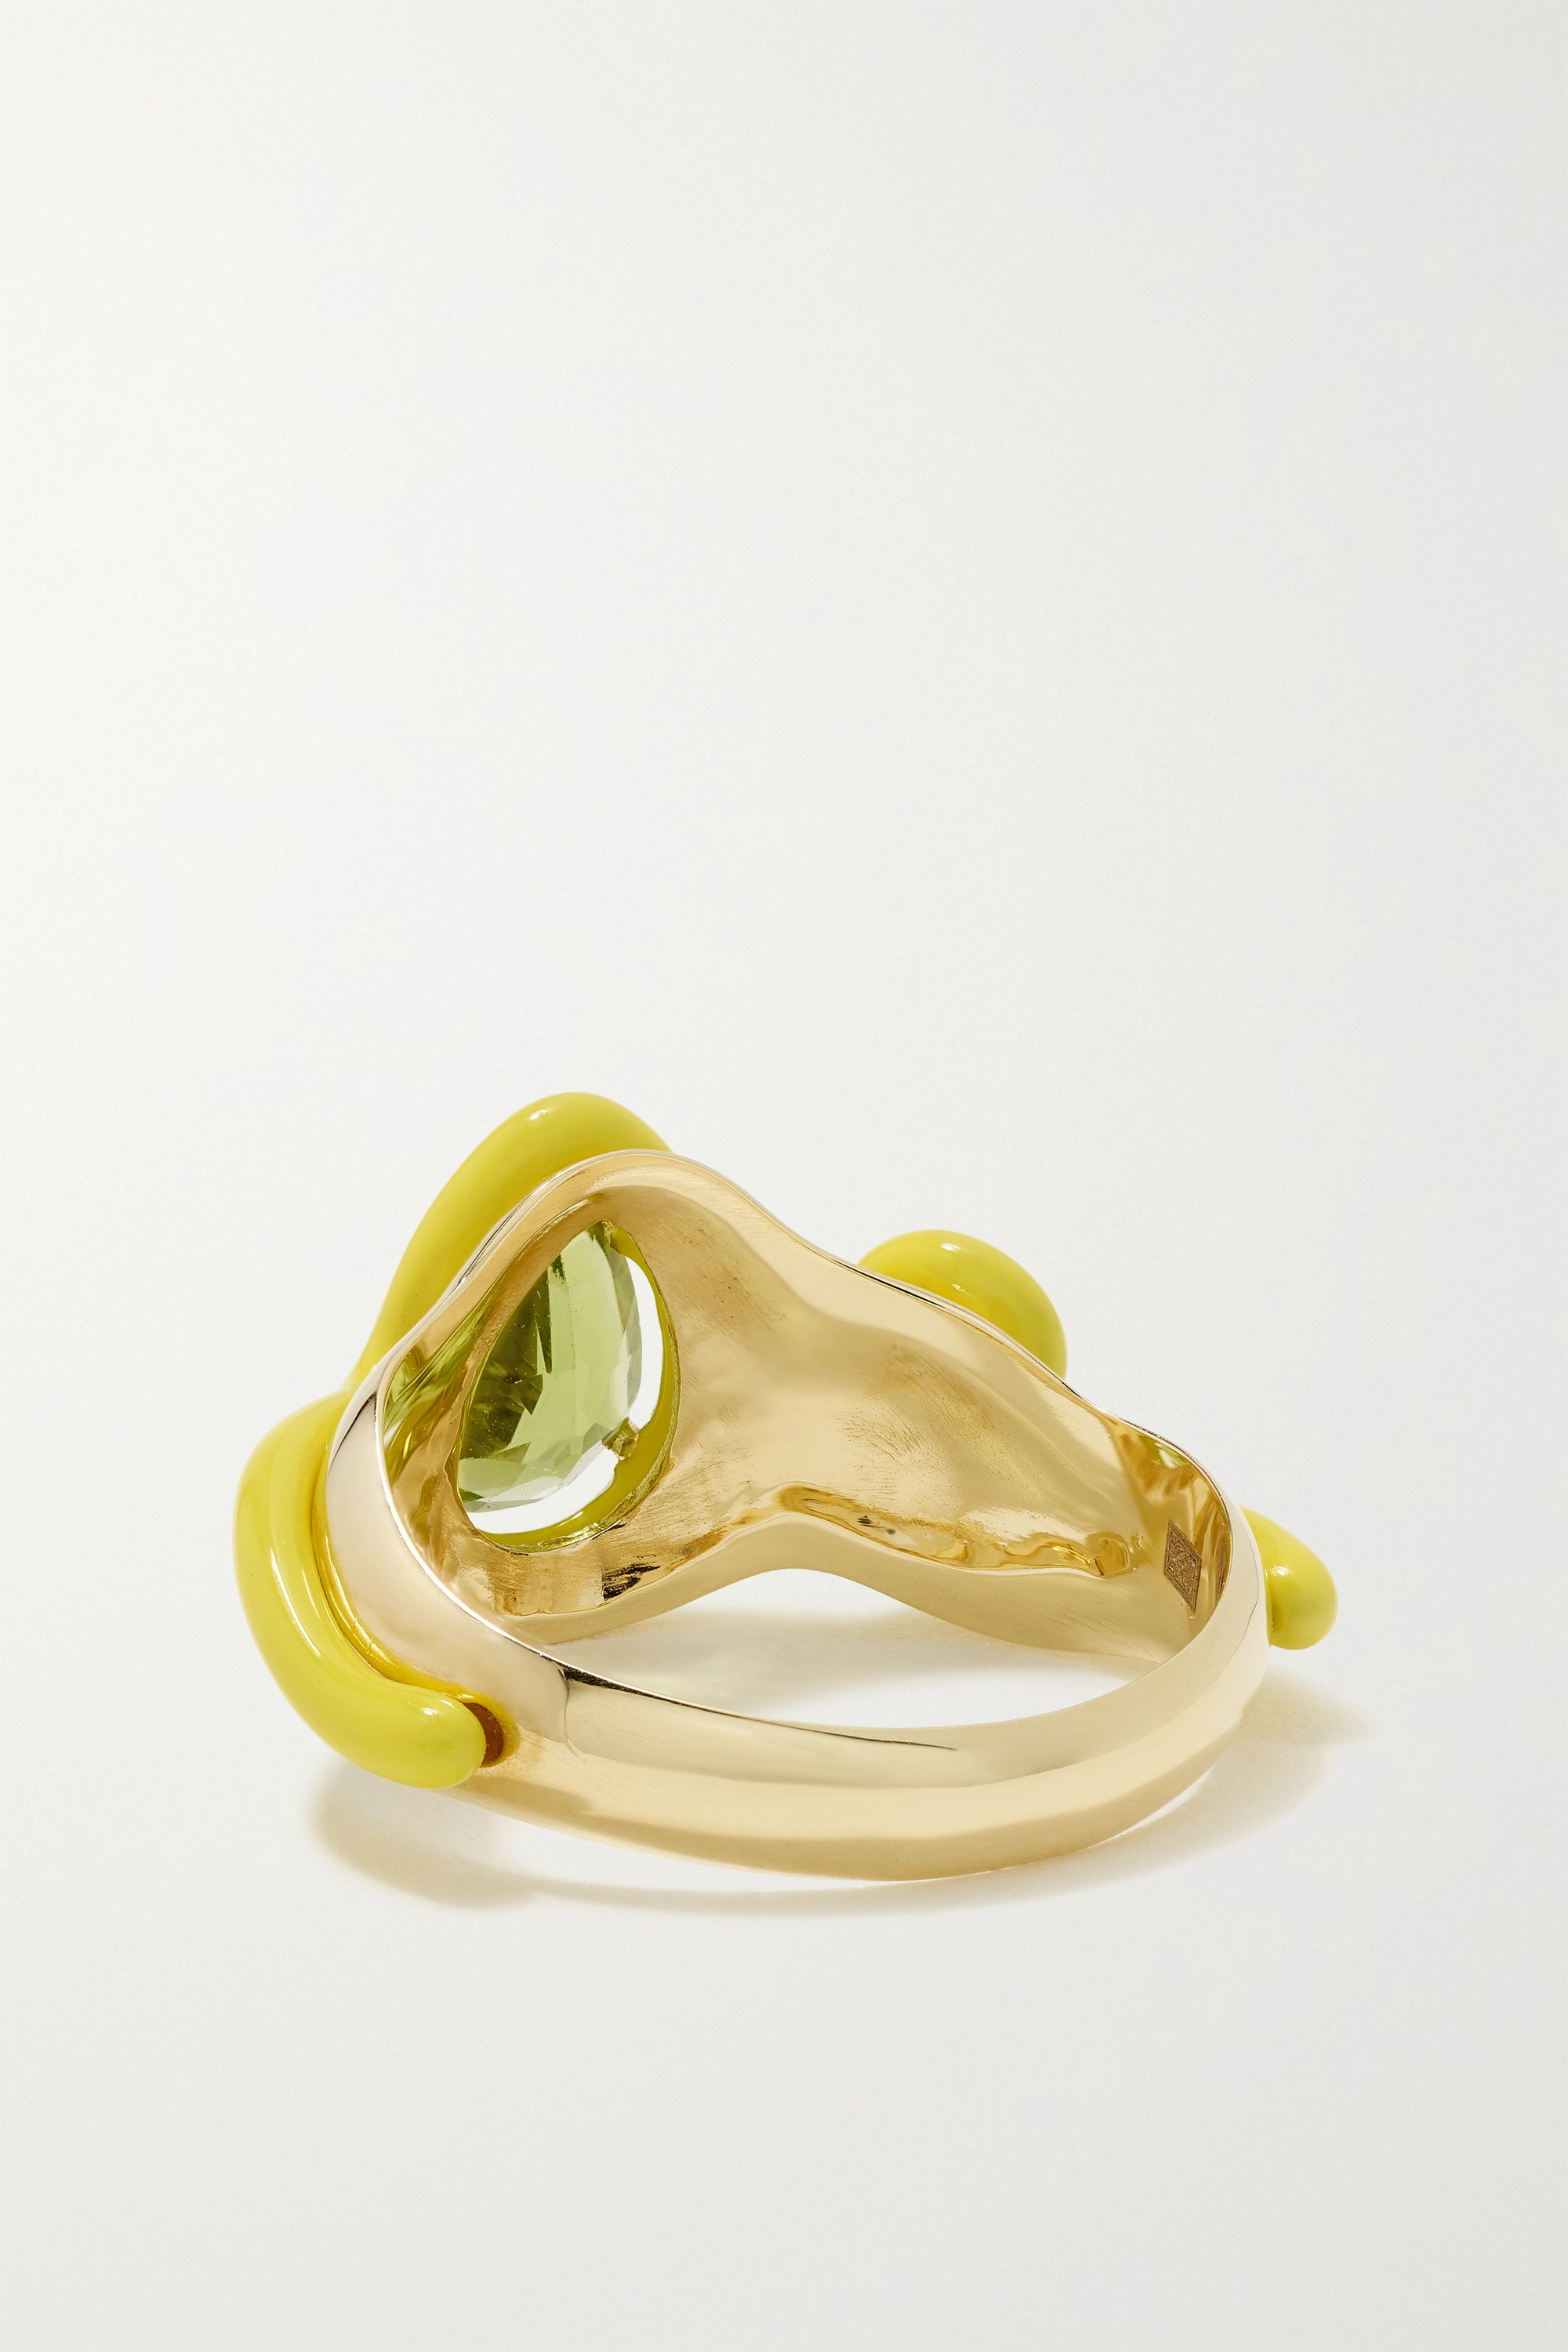 Bea Bongiasca Totally Awesome Squiggle 9-karat gold, enamel and peridot ring